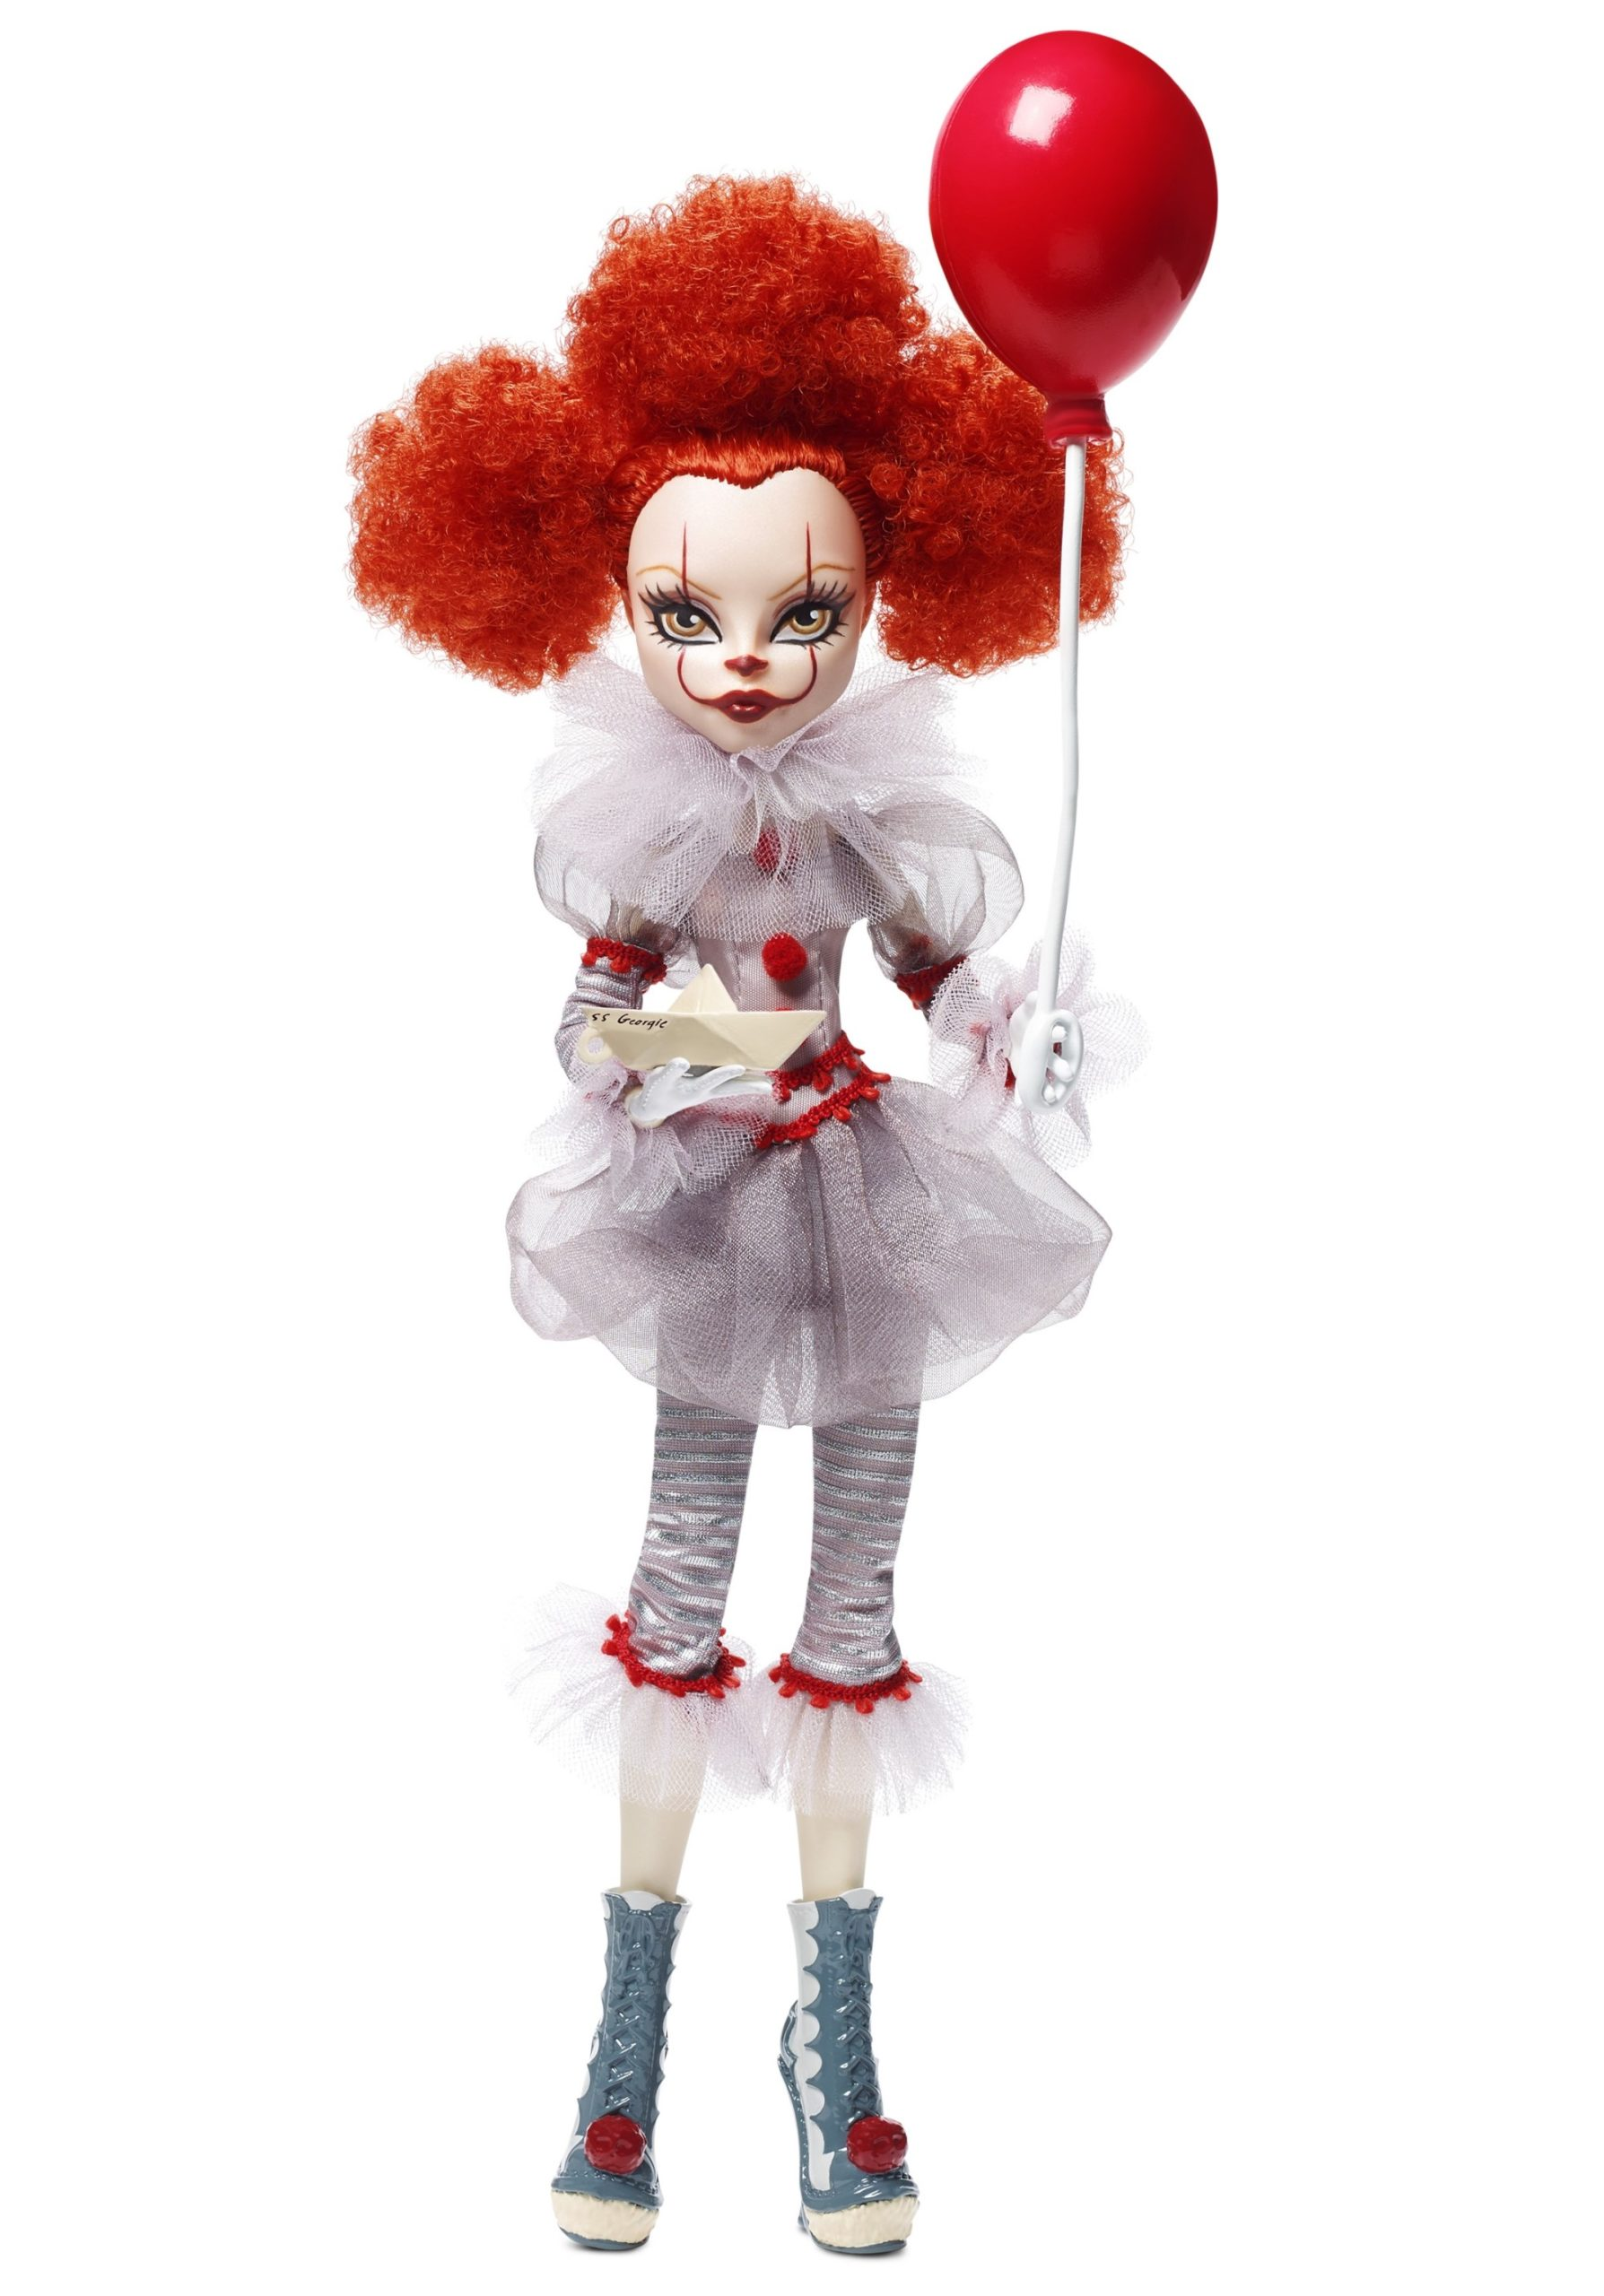 Mattel turns Pennywise and The Grady Twins into Monster High-style dolls 16